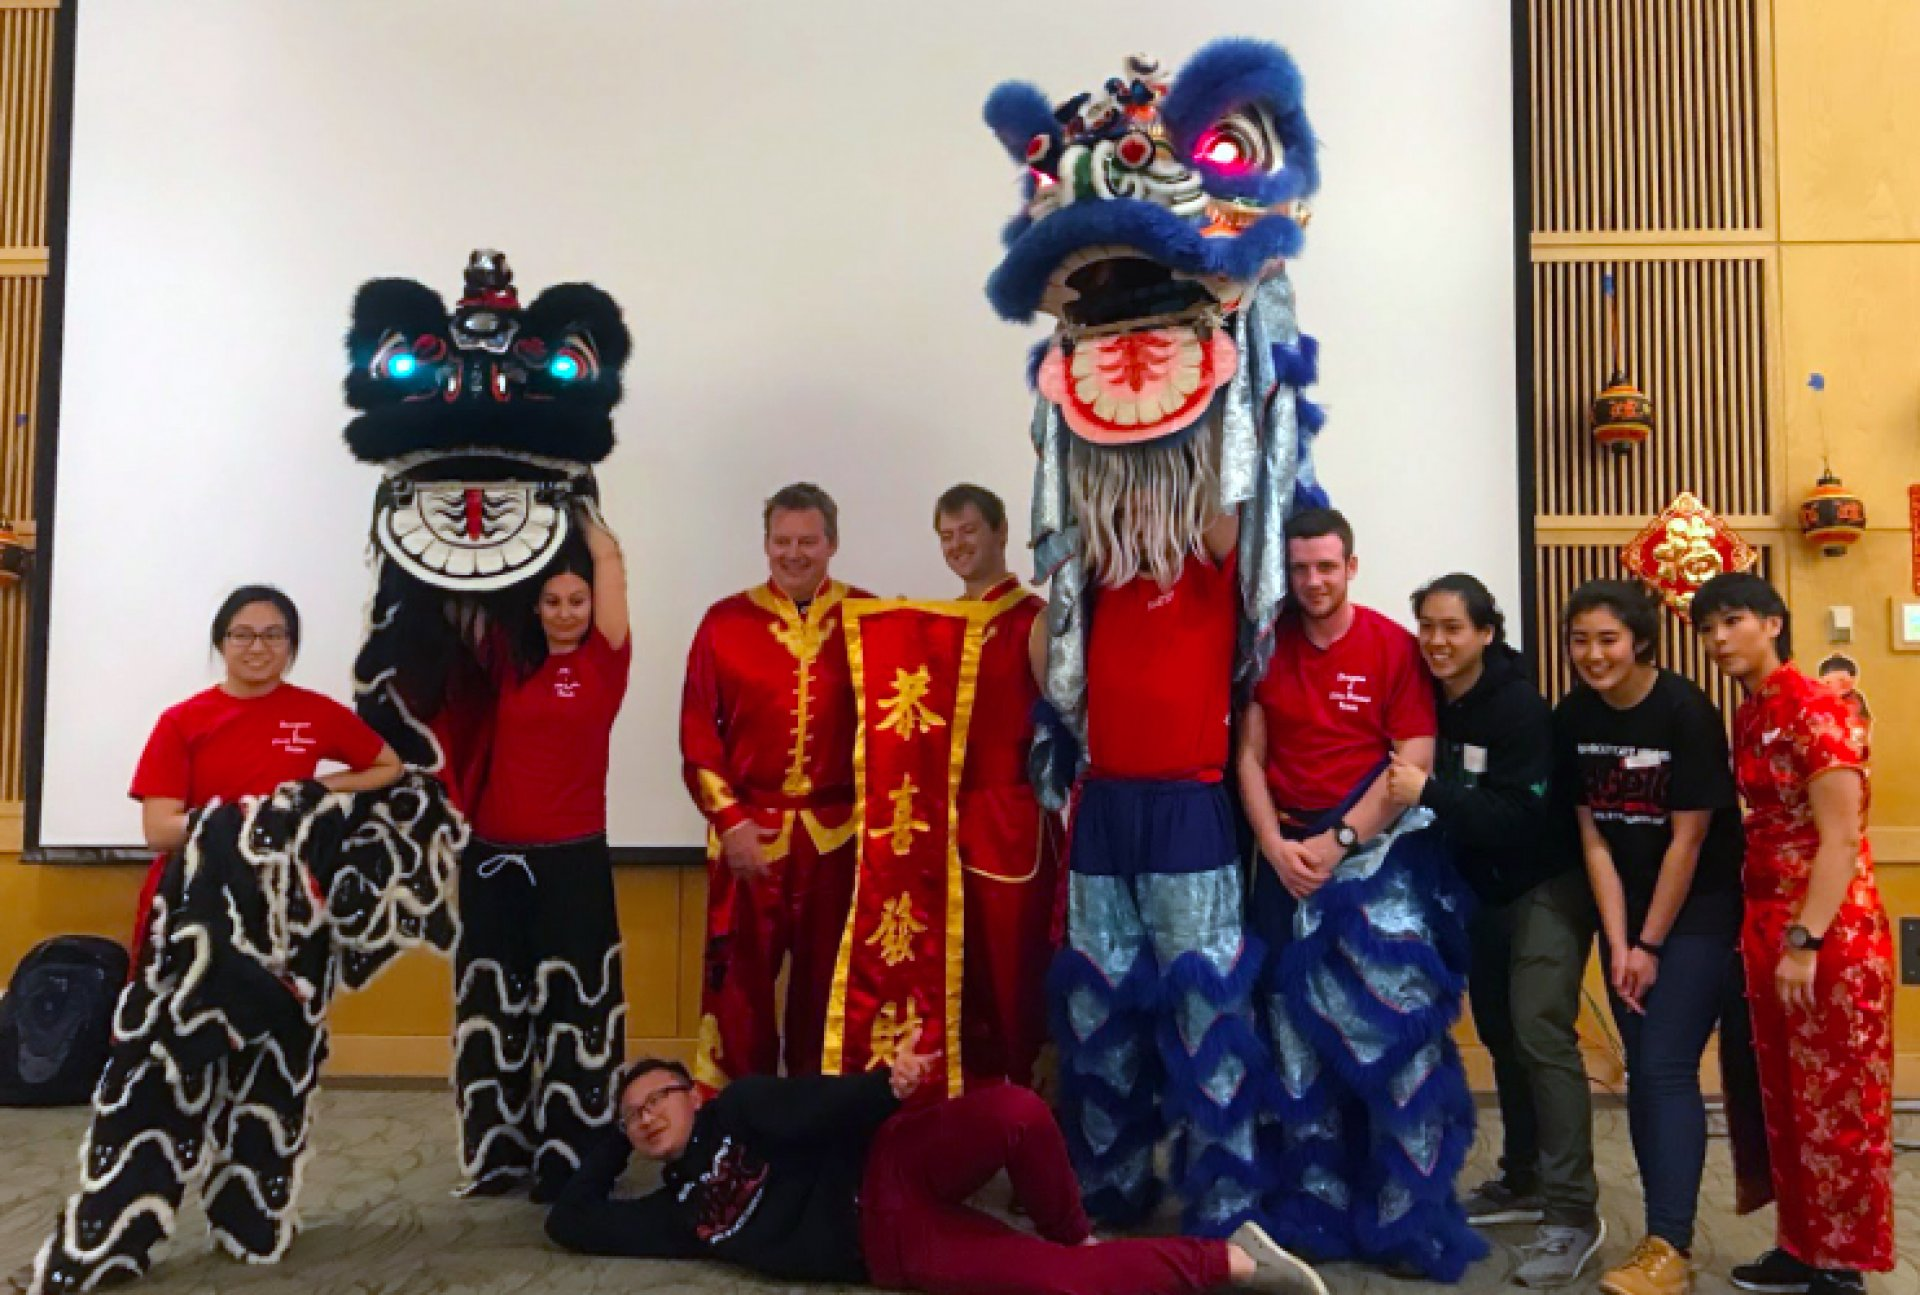 Lunar New Year performers, instructors and hosts gather to take pictures for their audience after the lion dance. Photo by Dajonea Robinson.